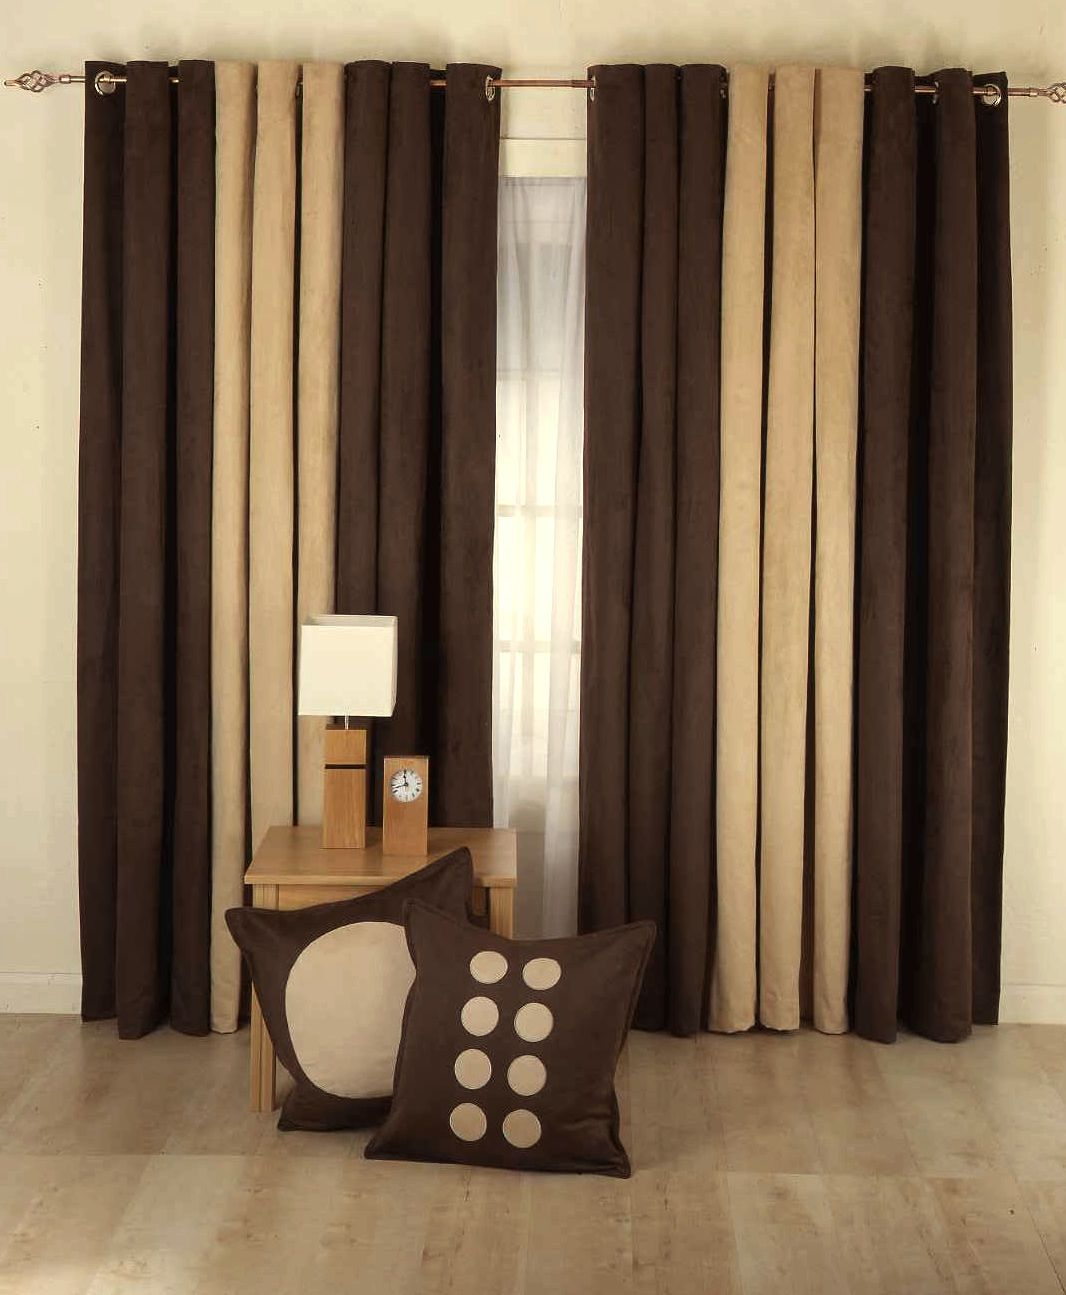 Brown curtains in bedroom - Top Dreamer Choose For You Modern Living Room Curtains Design Which Are In Different Colors And With Chic Patterns Look At The Gallery And Choose Your